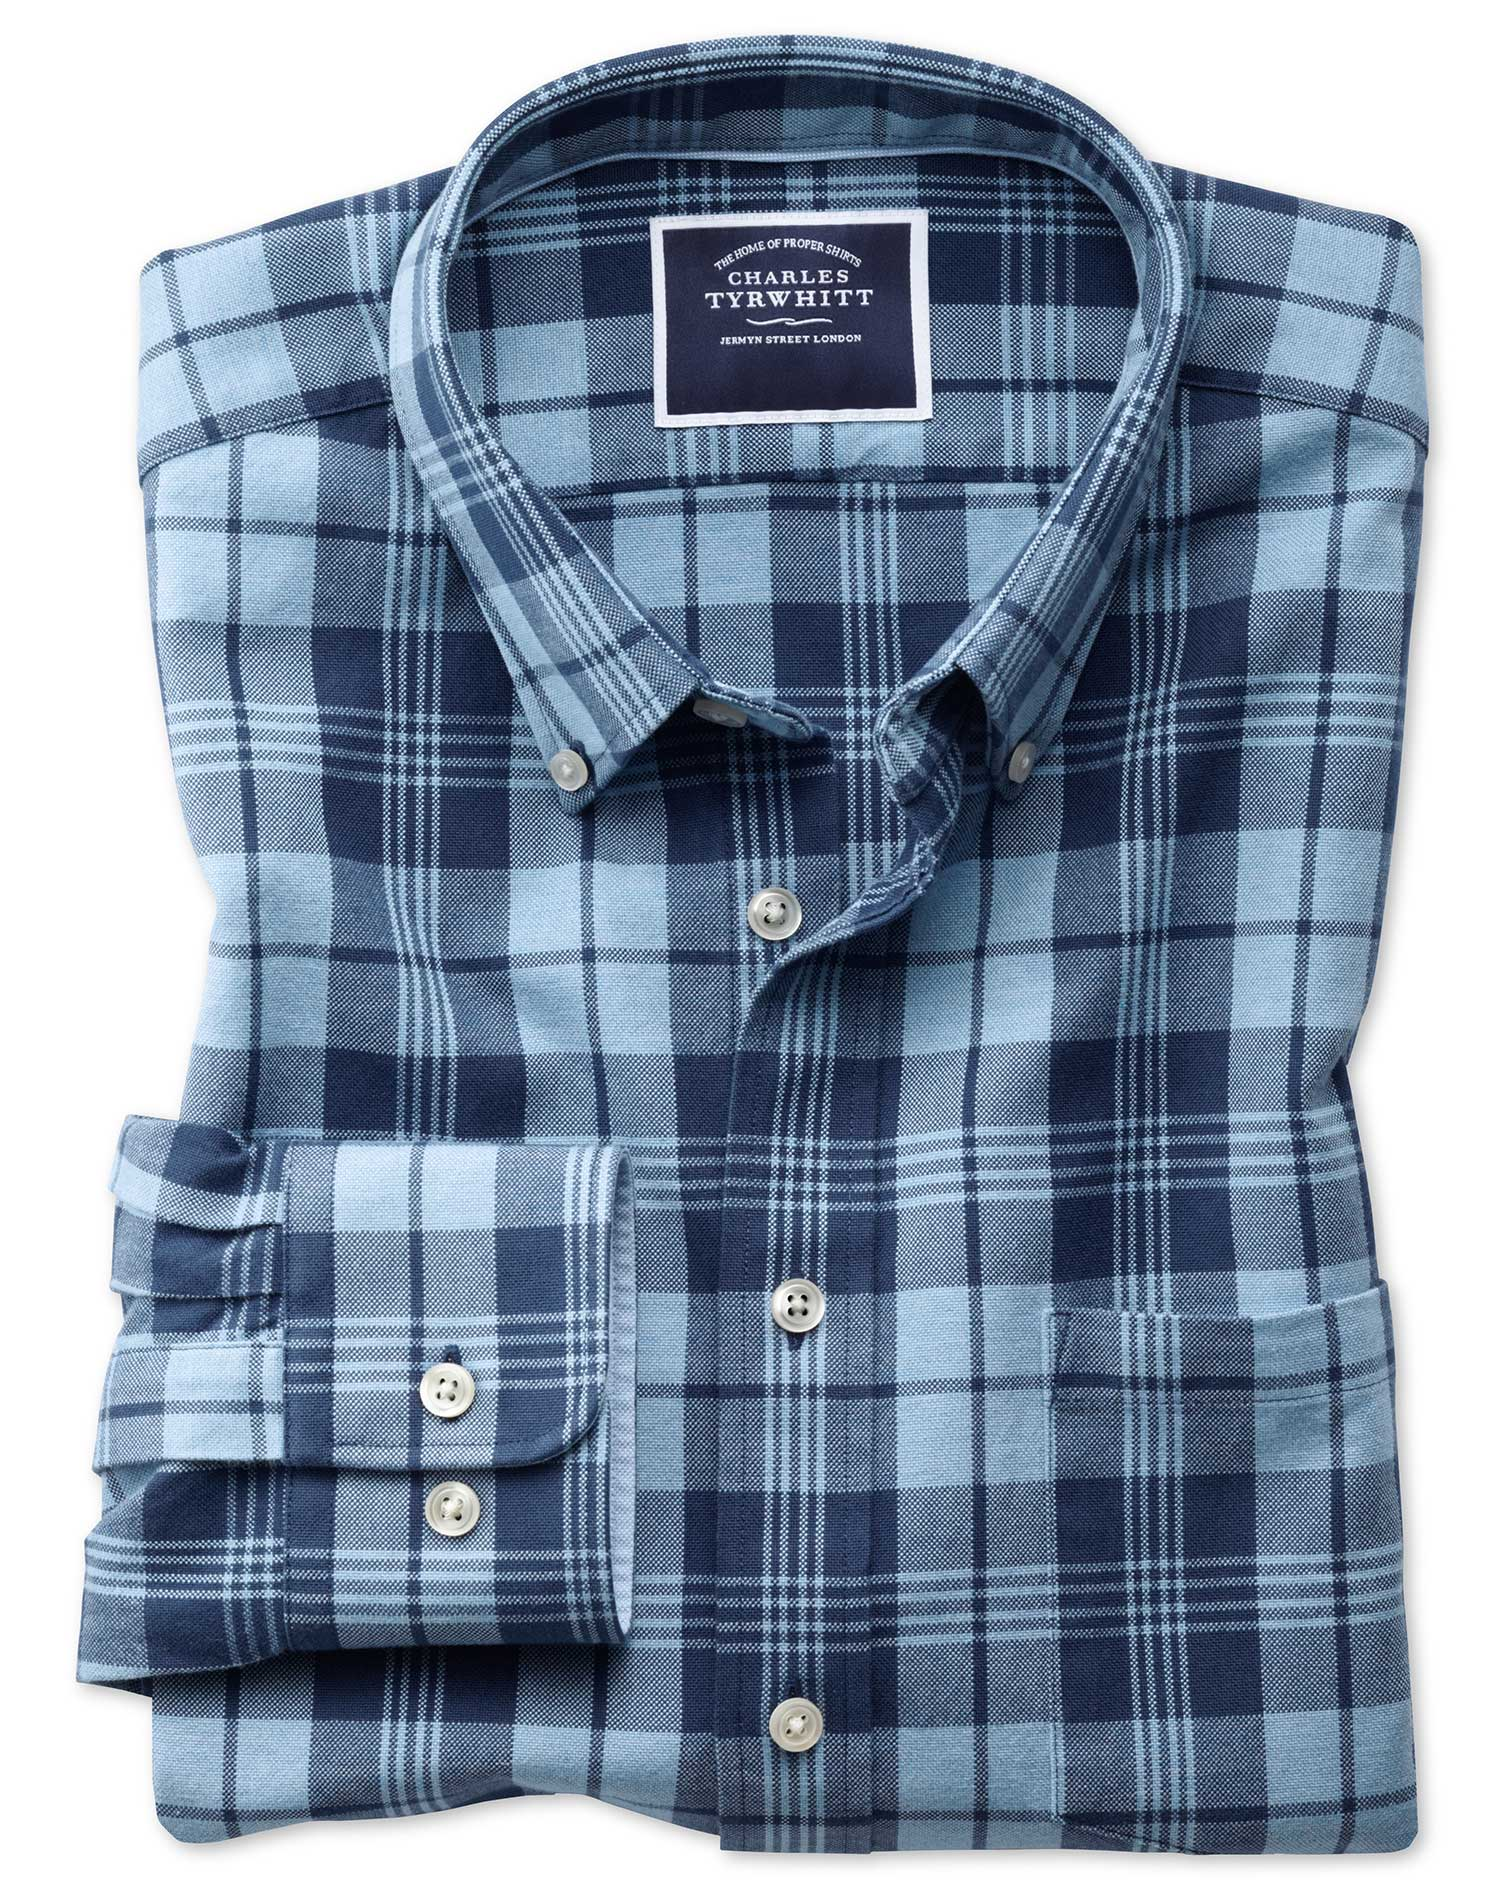 Classic Fit Button-Down Washed Oxford Navy and Blue Check Cotton Shirt Single Cuff Size XXL by Charl